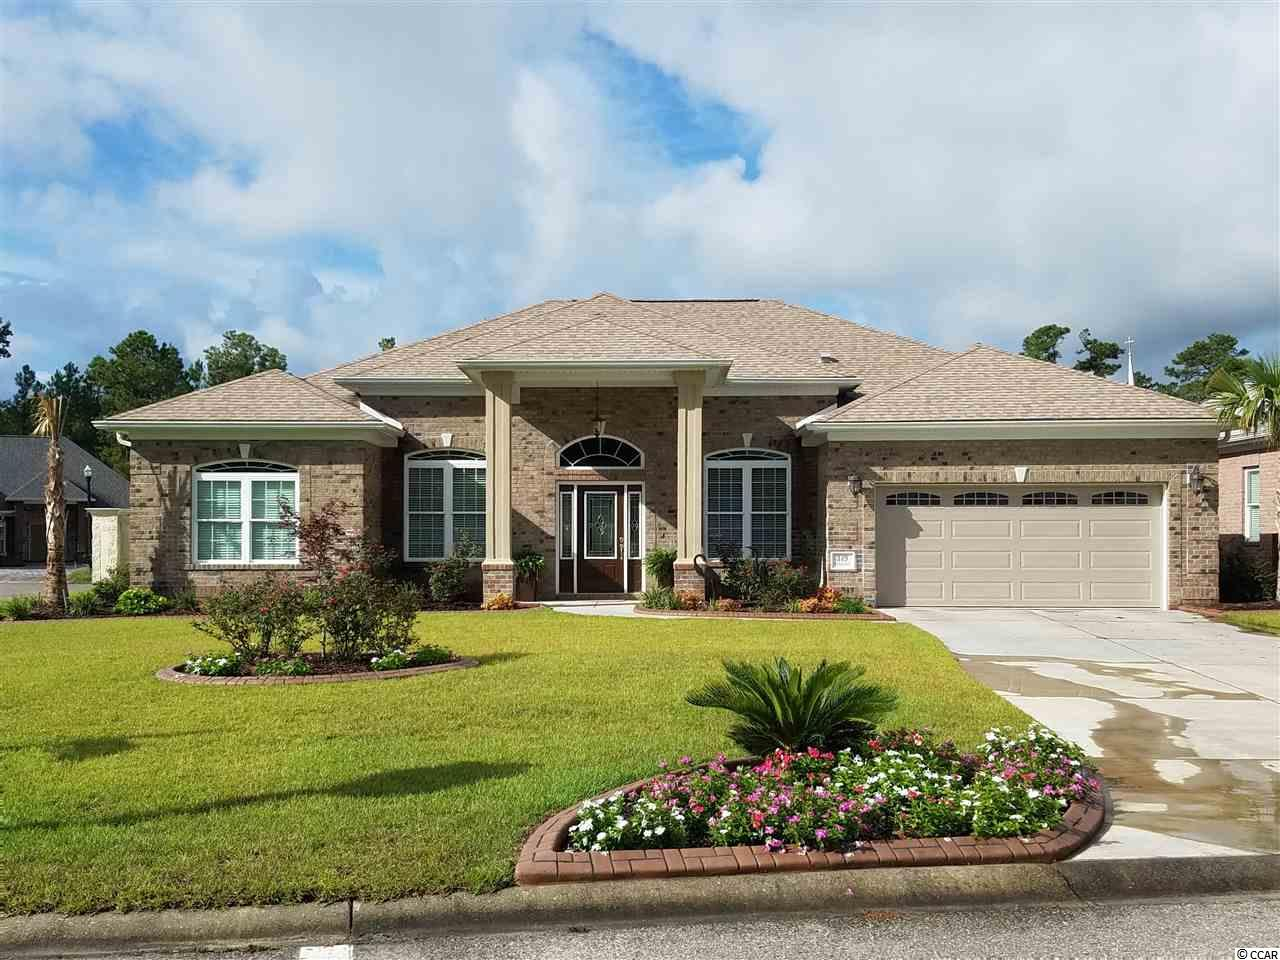 Single Family Home for Sale at 237 Waterfall Circle 237 Waterfall Circle Little River, South Carolina 29566 United States